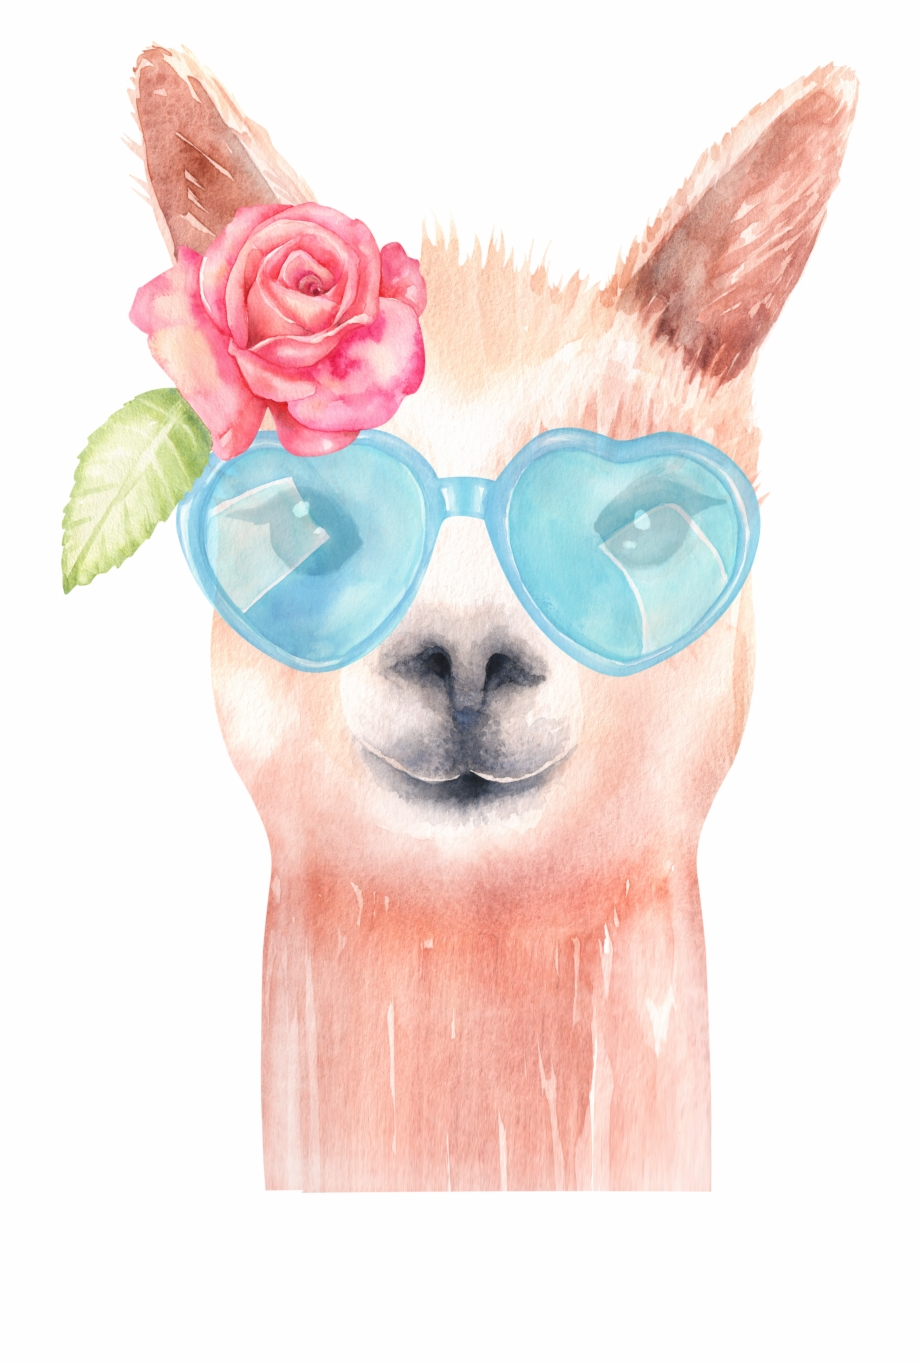 Llama head clipart with out background royalty free stock Watercolor Alpaca, Original Handmade Llama Illustrations ... royalty free stock